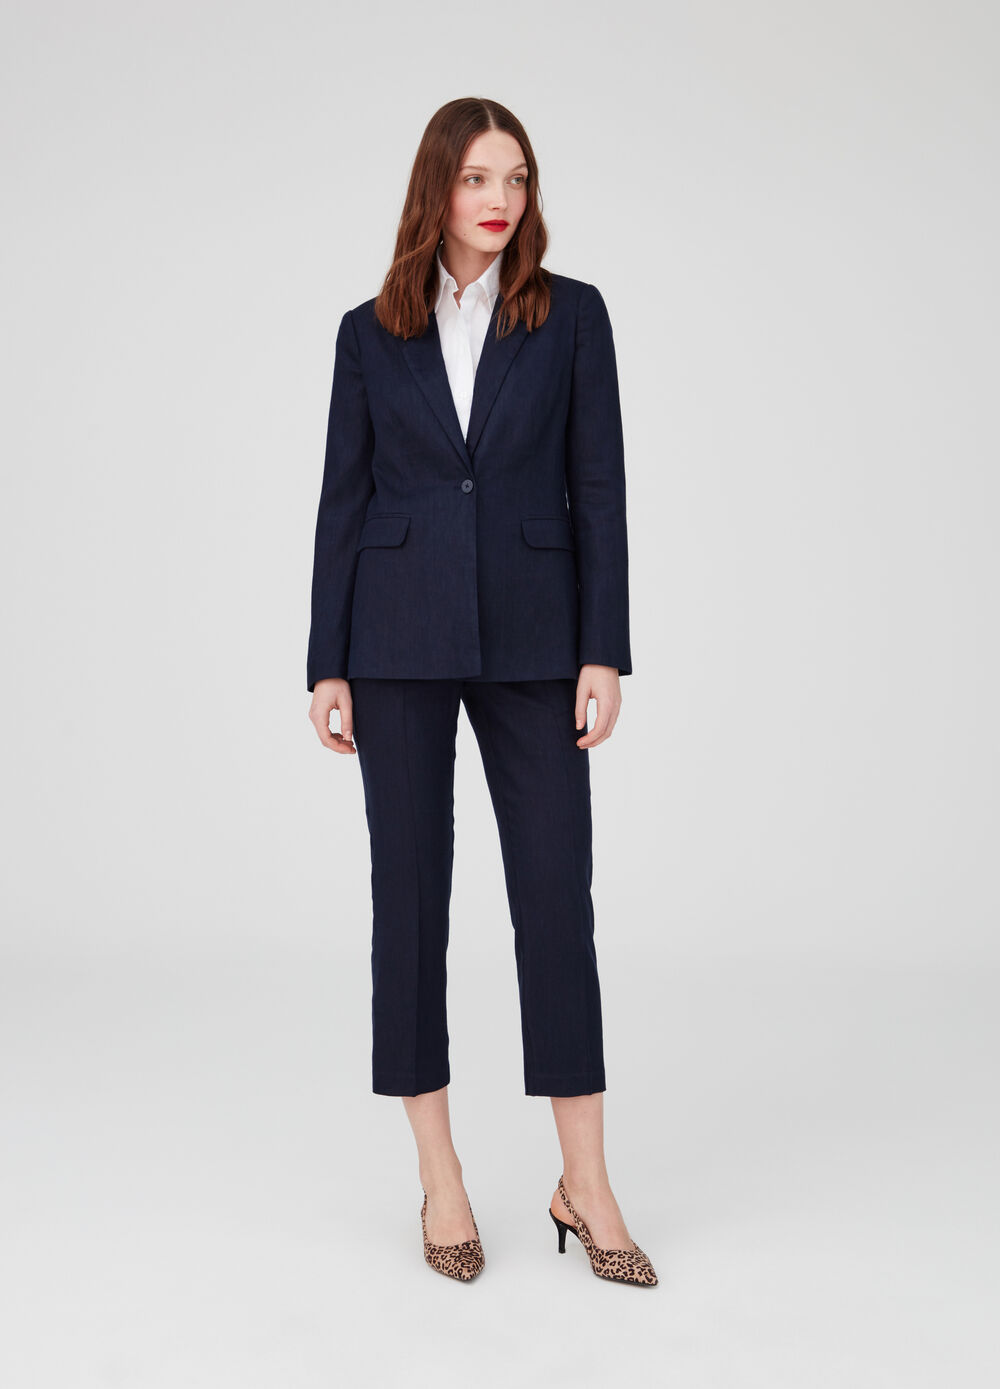 Linen and cotton blazer with flap pockets